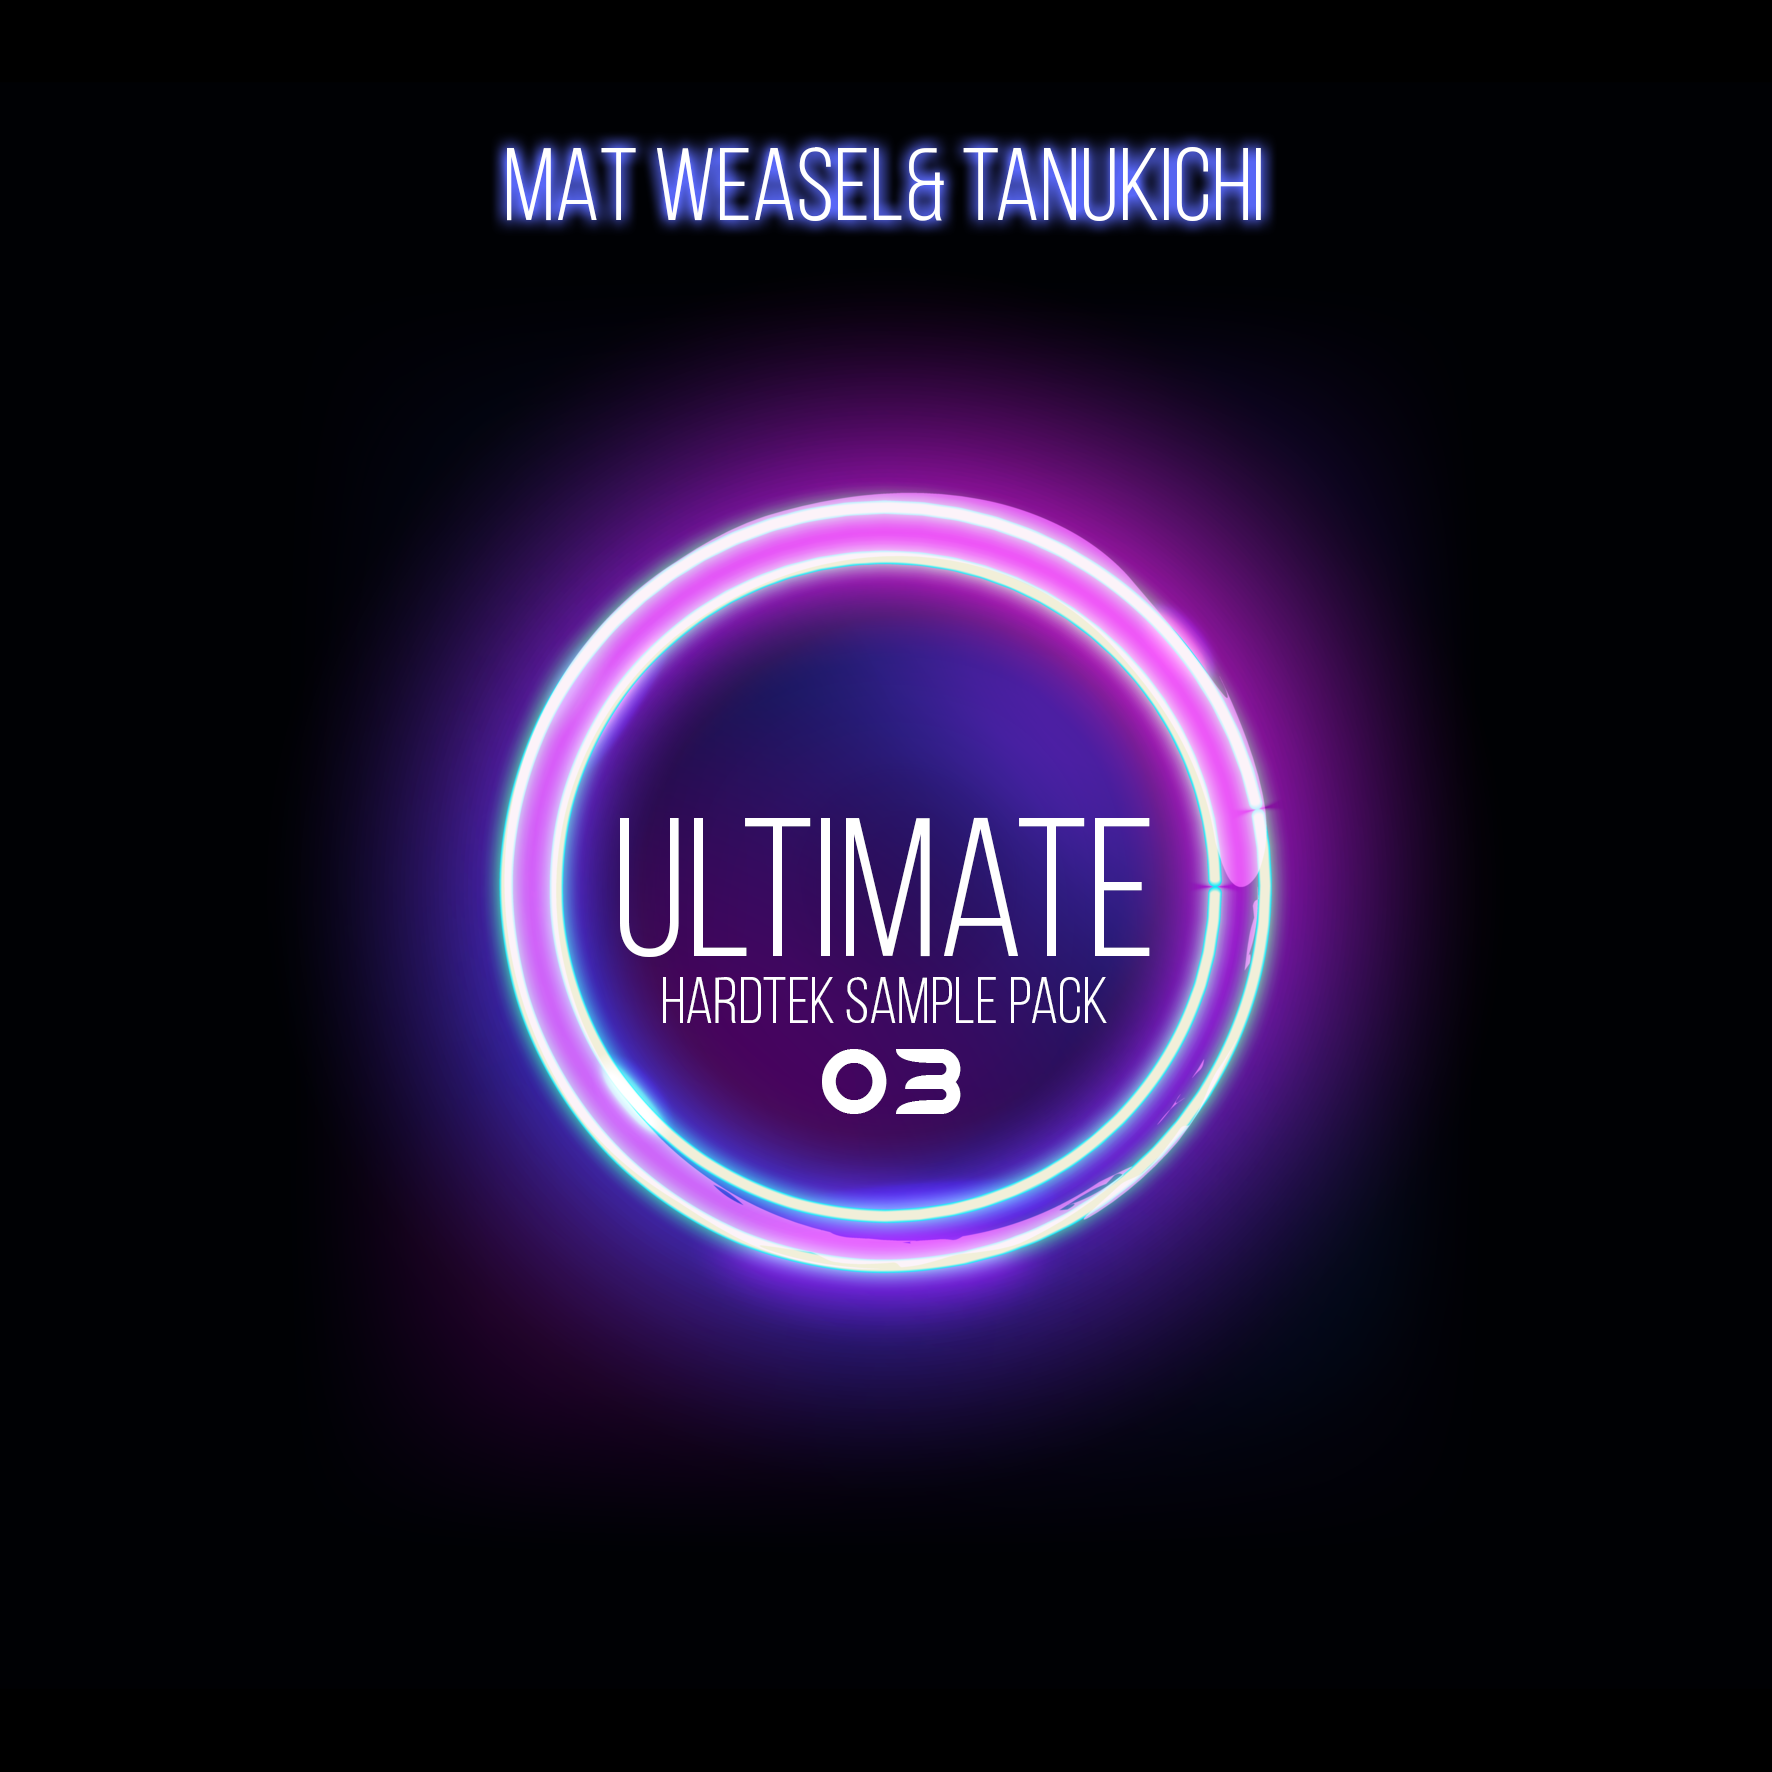 the ultimate hardtek sample pack 3 by mat weasel tanukichi発売